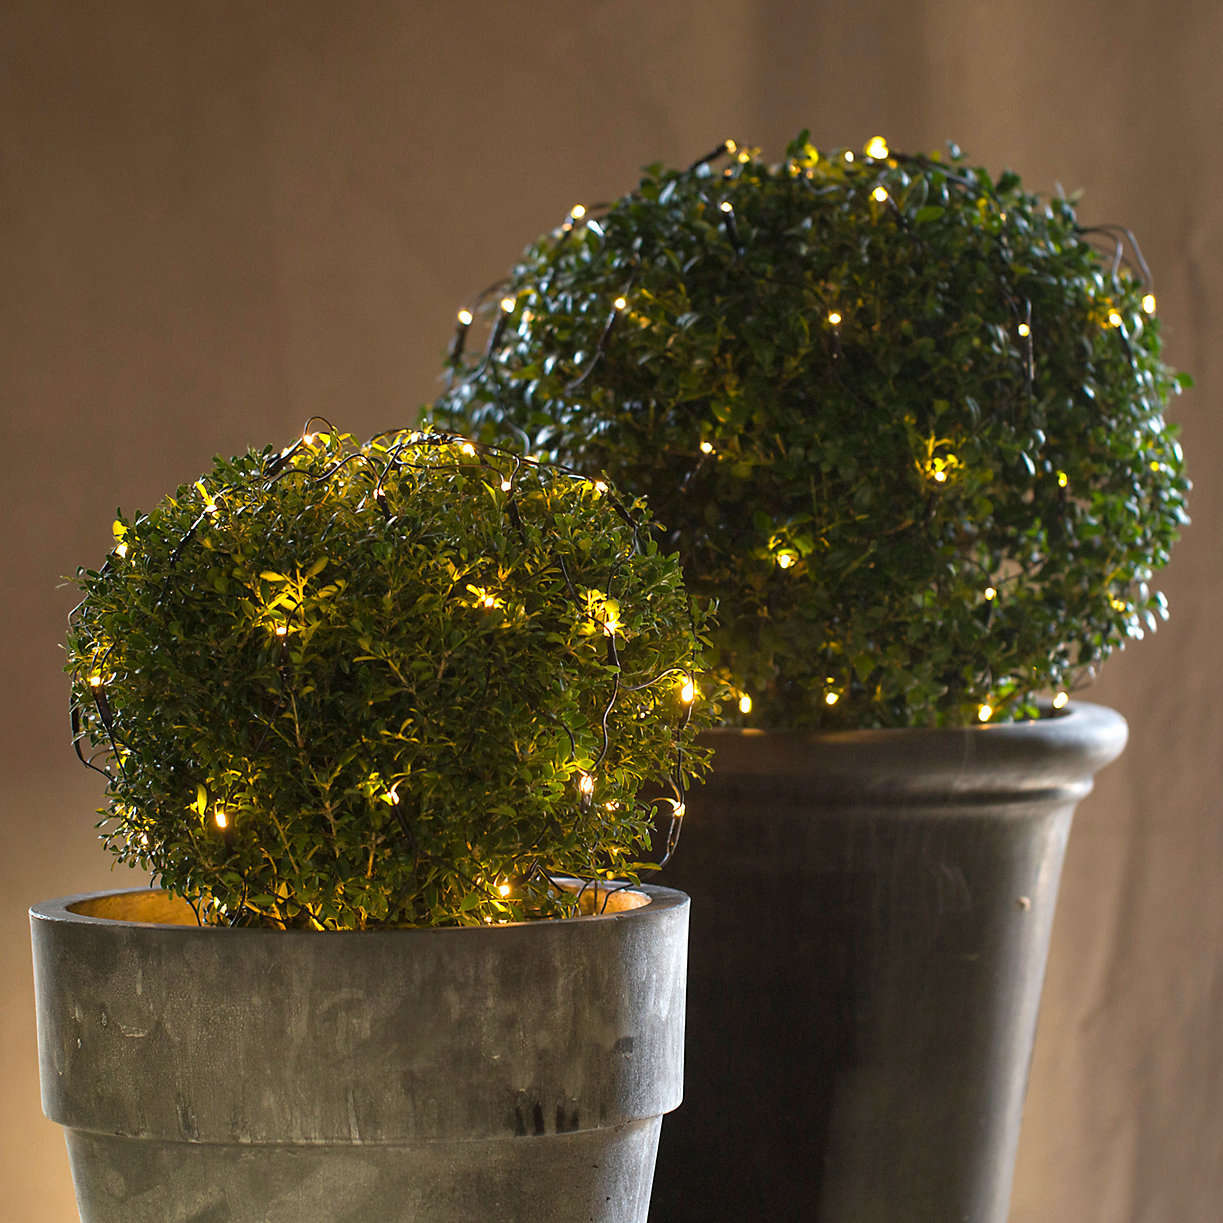 outdoor-holiday-lights-boxwood-netting-gardenista